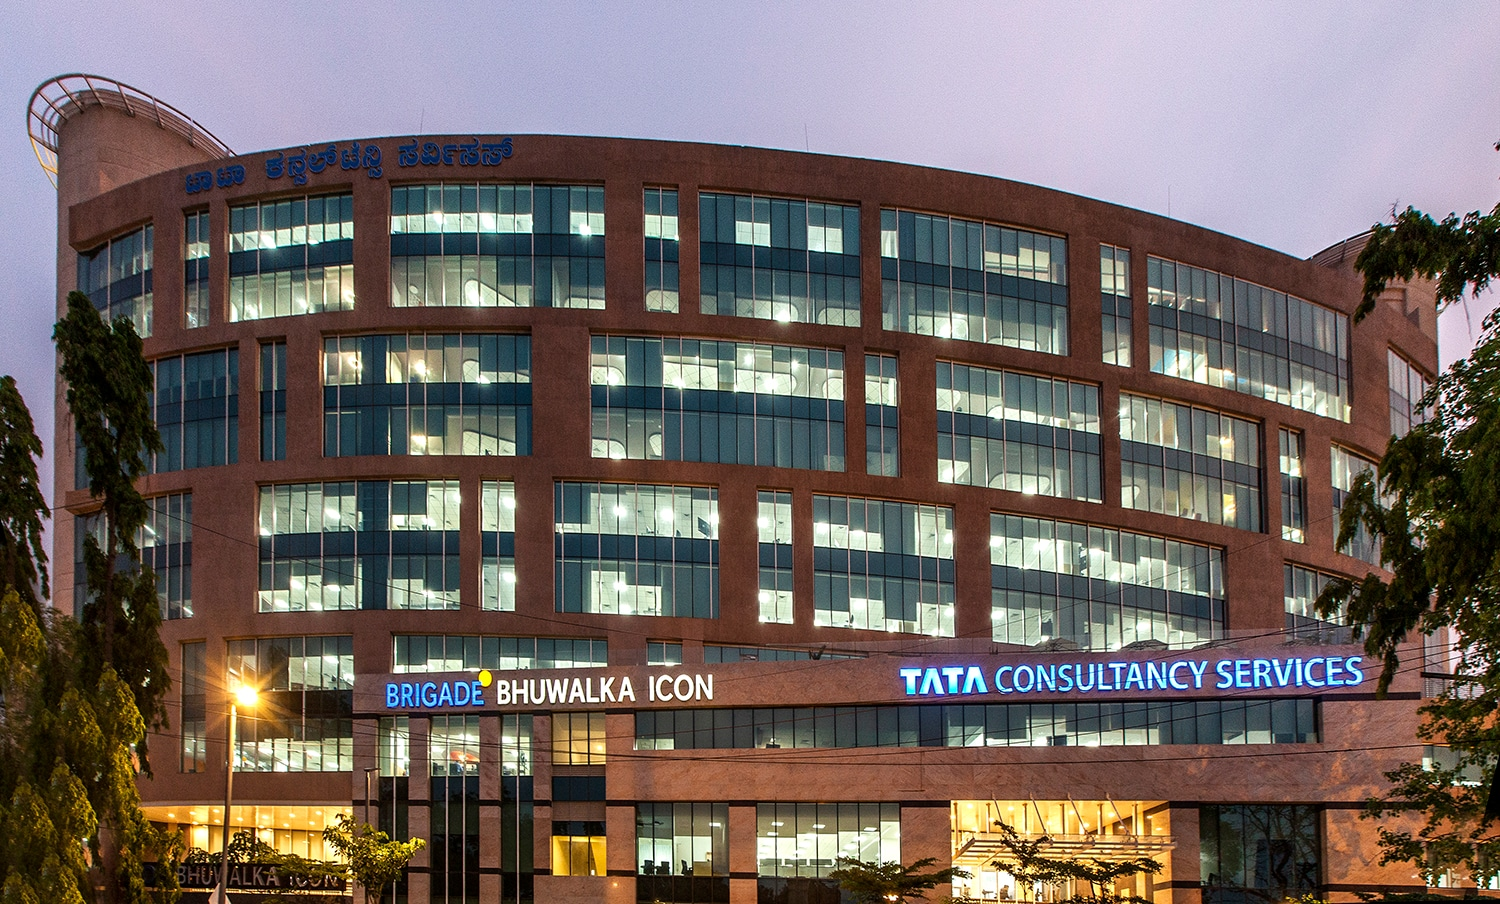 Tata Consultancy Services Ltd (TCS) reshuffled its management, for the first time, after Rajesh Gopinathan took over as the chief executive officer two years ago. The company appointed new deputy heads for its human resource function and manufacturing vertical, <em>Mint</em> reported citing sources. (Picture credits: stock image)